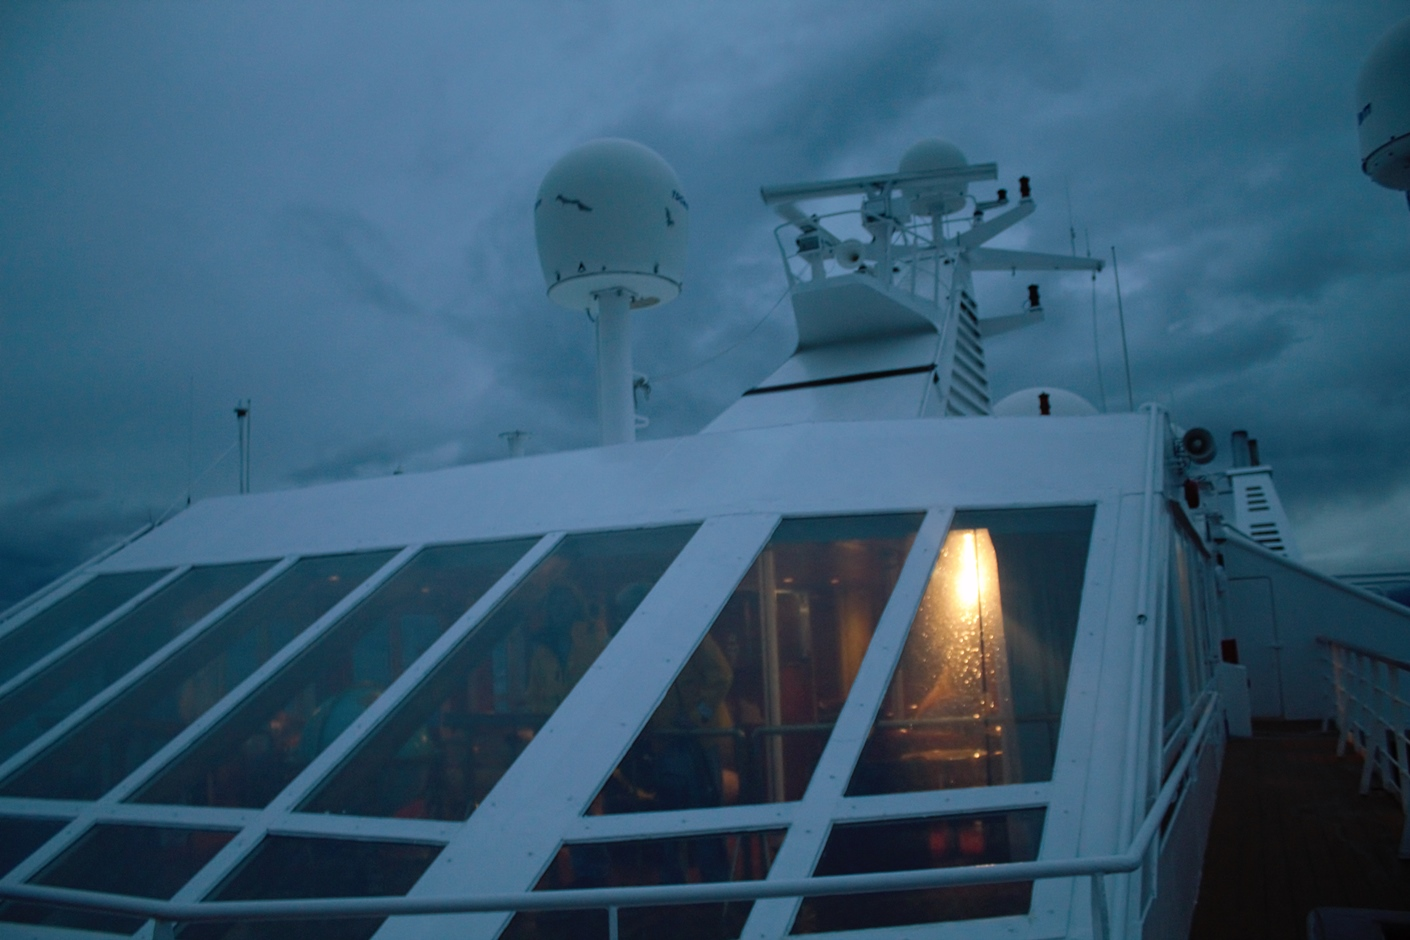 drake passage at night